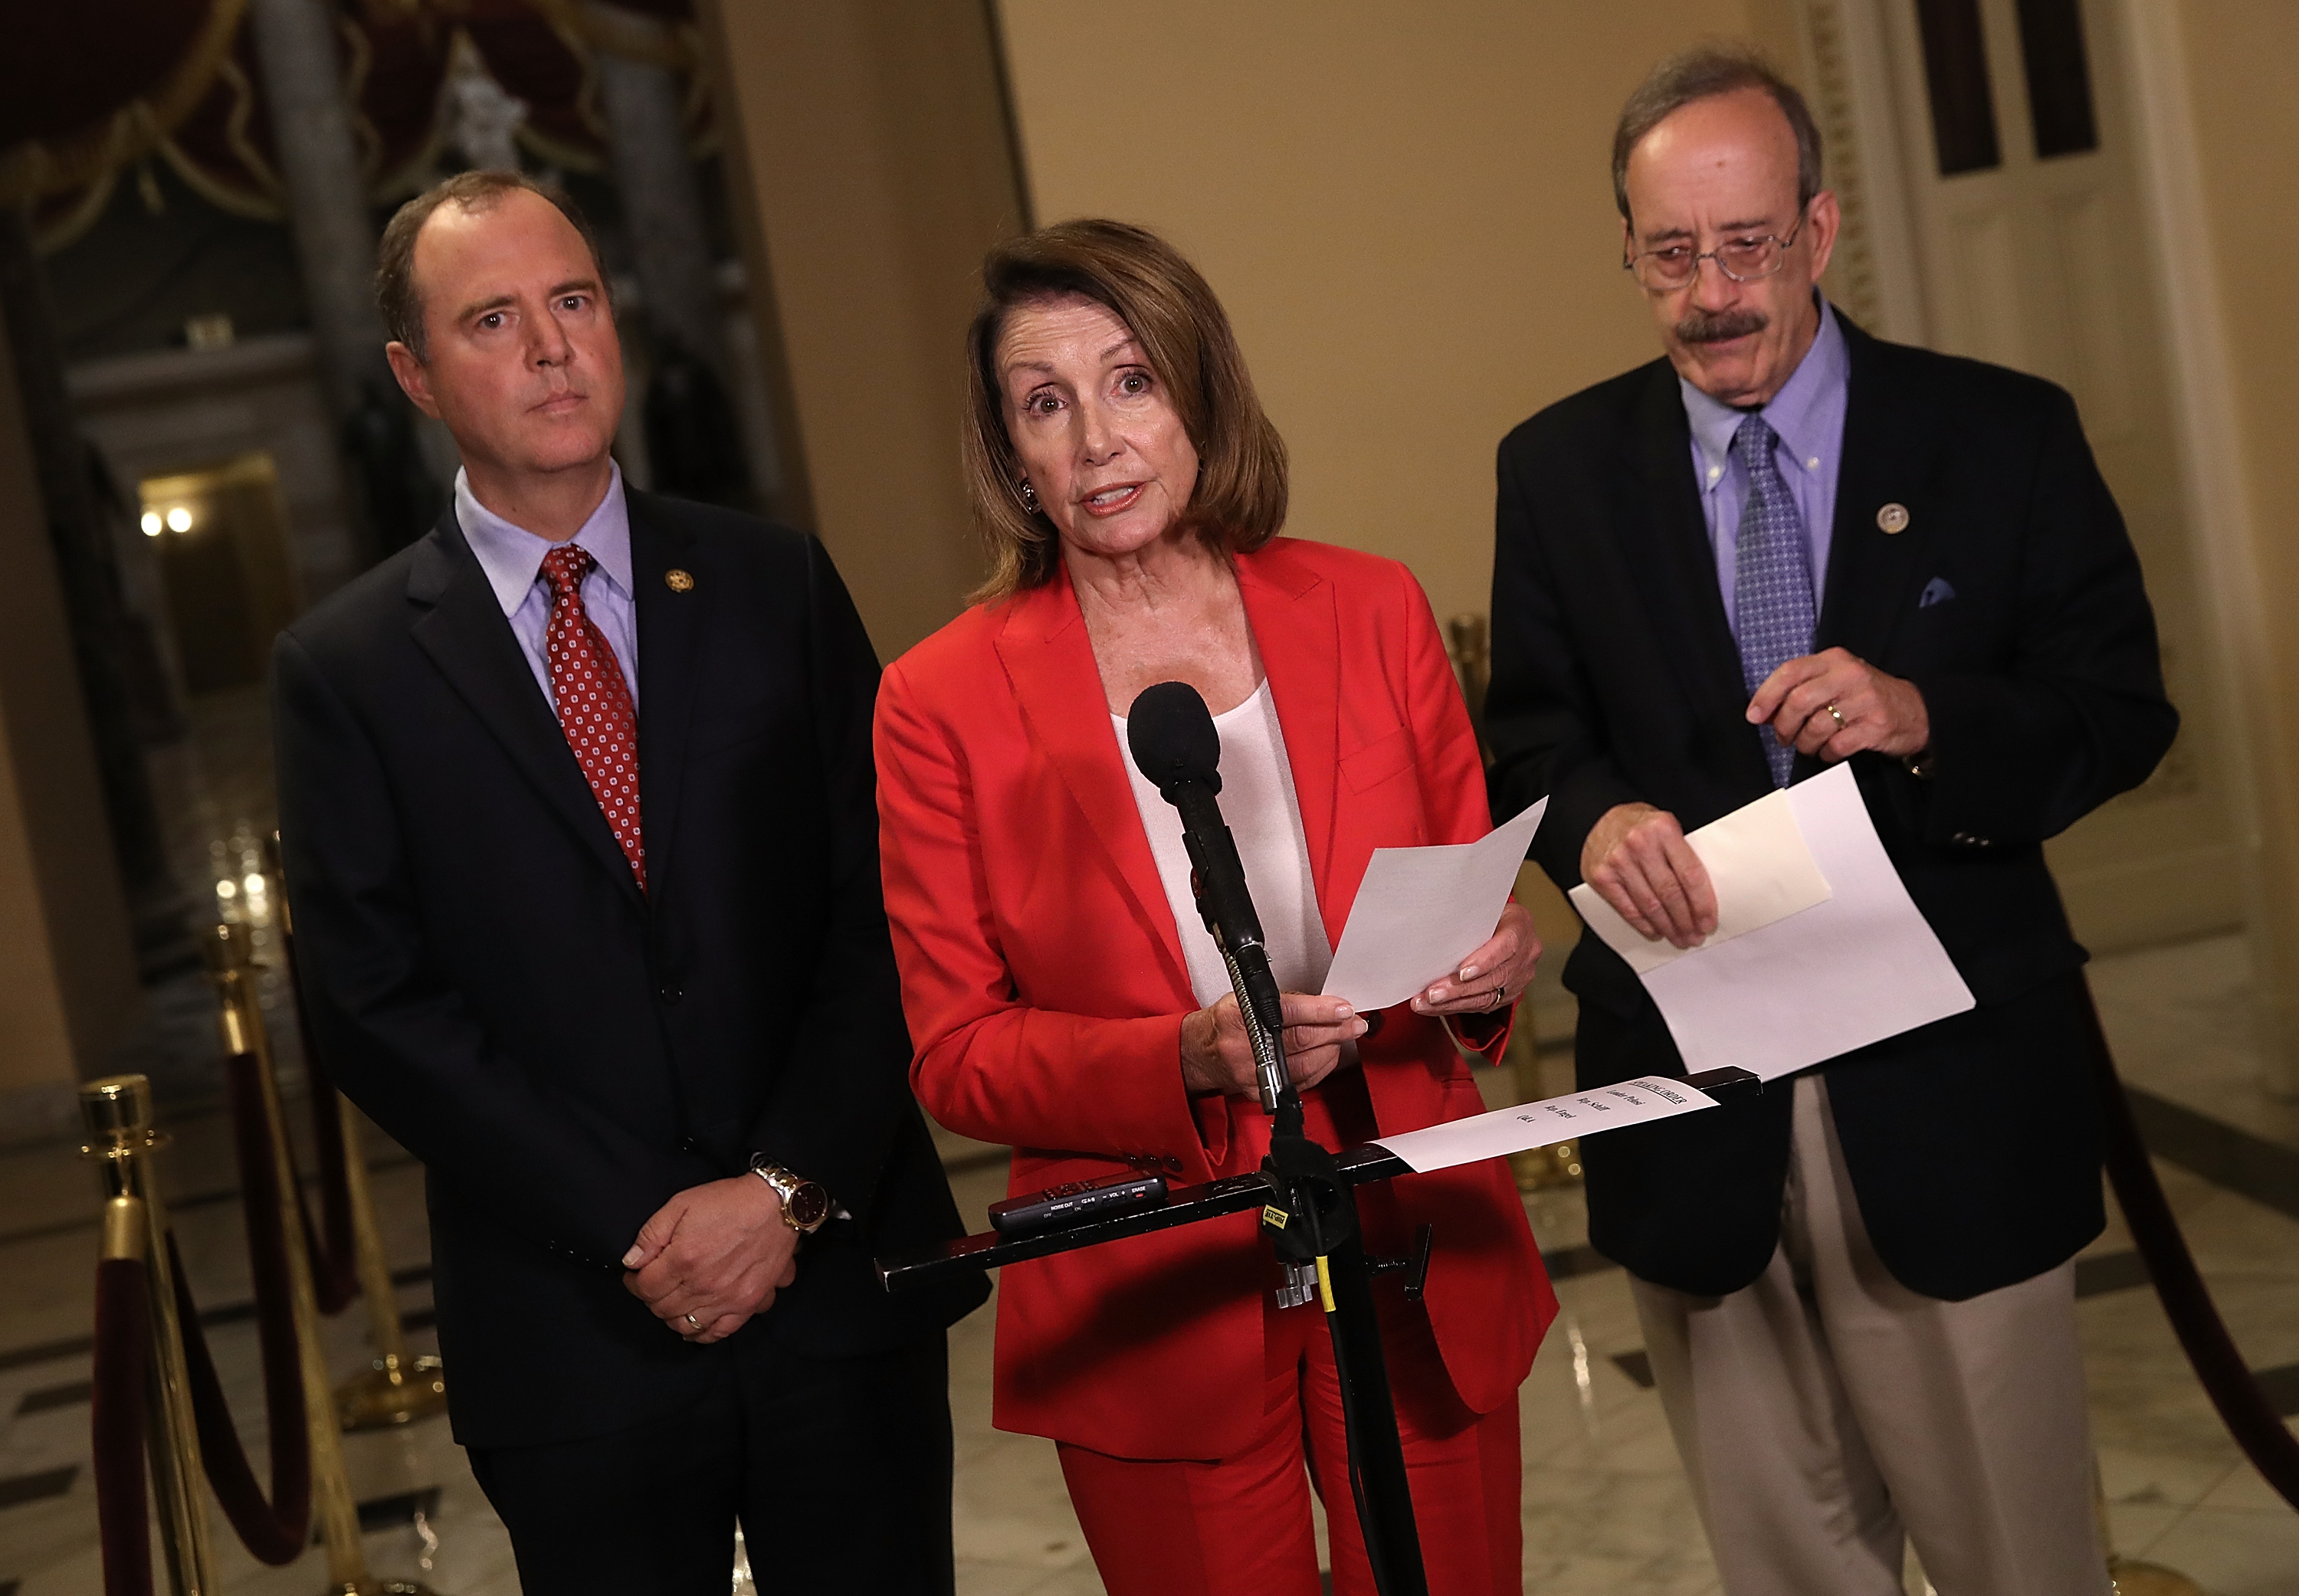 House Minority Leader Nancy Pelosi speaks at a press conference at the U.S. Capitol July 23, 2018 in Washington, DC. Pelosi, Rep. Adam Schiff (L) and Rep. Eliot Engel (R) have introduced a resolution condemning U.S. President Donald Trump's statements during the recent summit with Russian President Vladimir Putin in Helsinki. (Photo by Win McNamee/Getty Images)